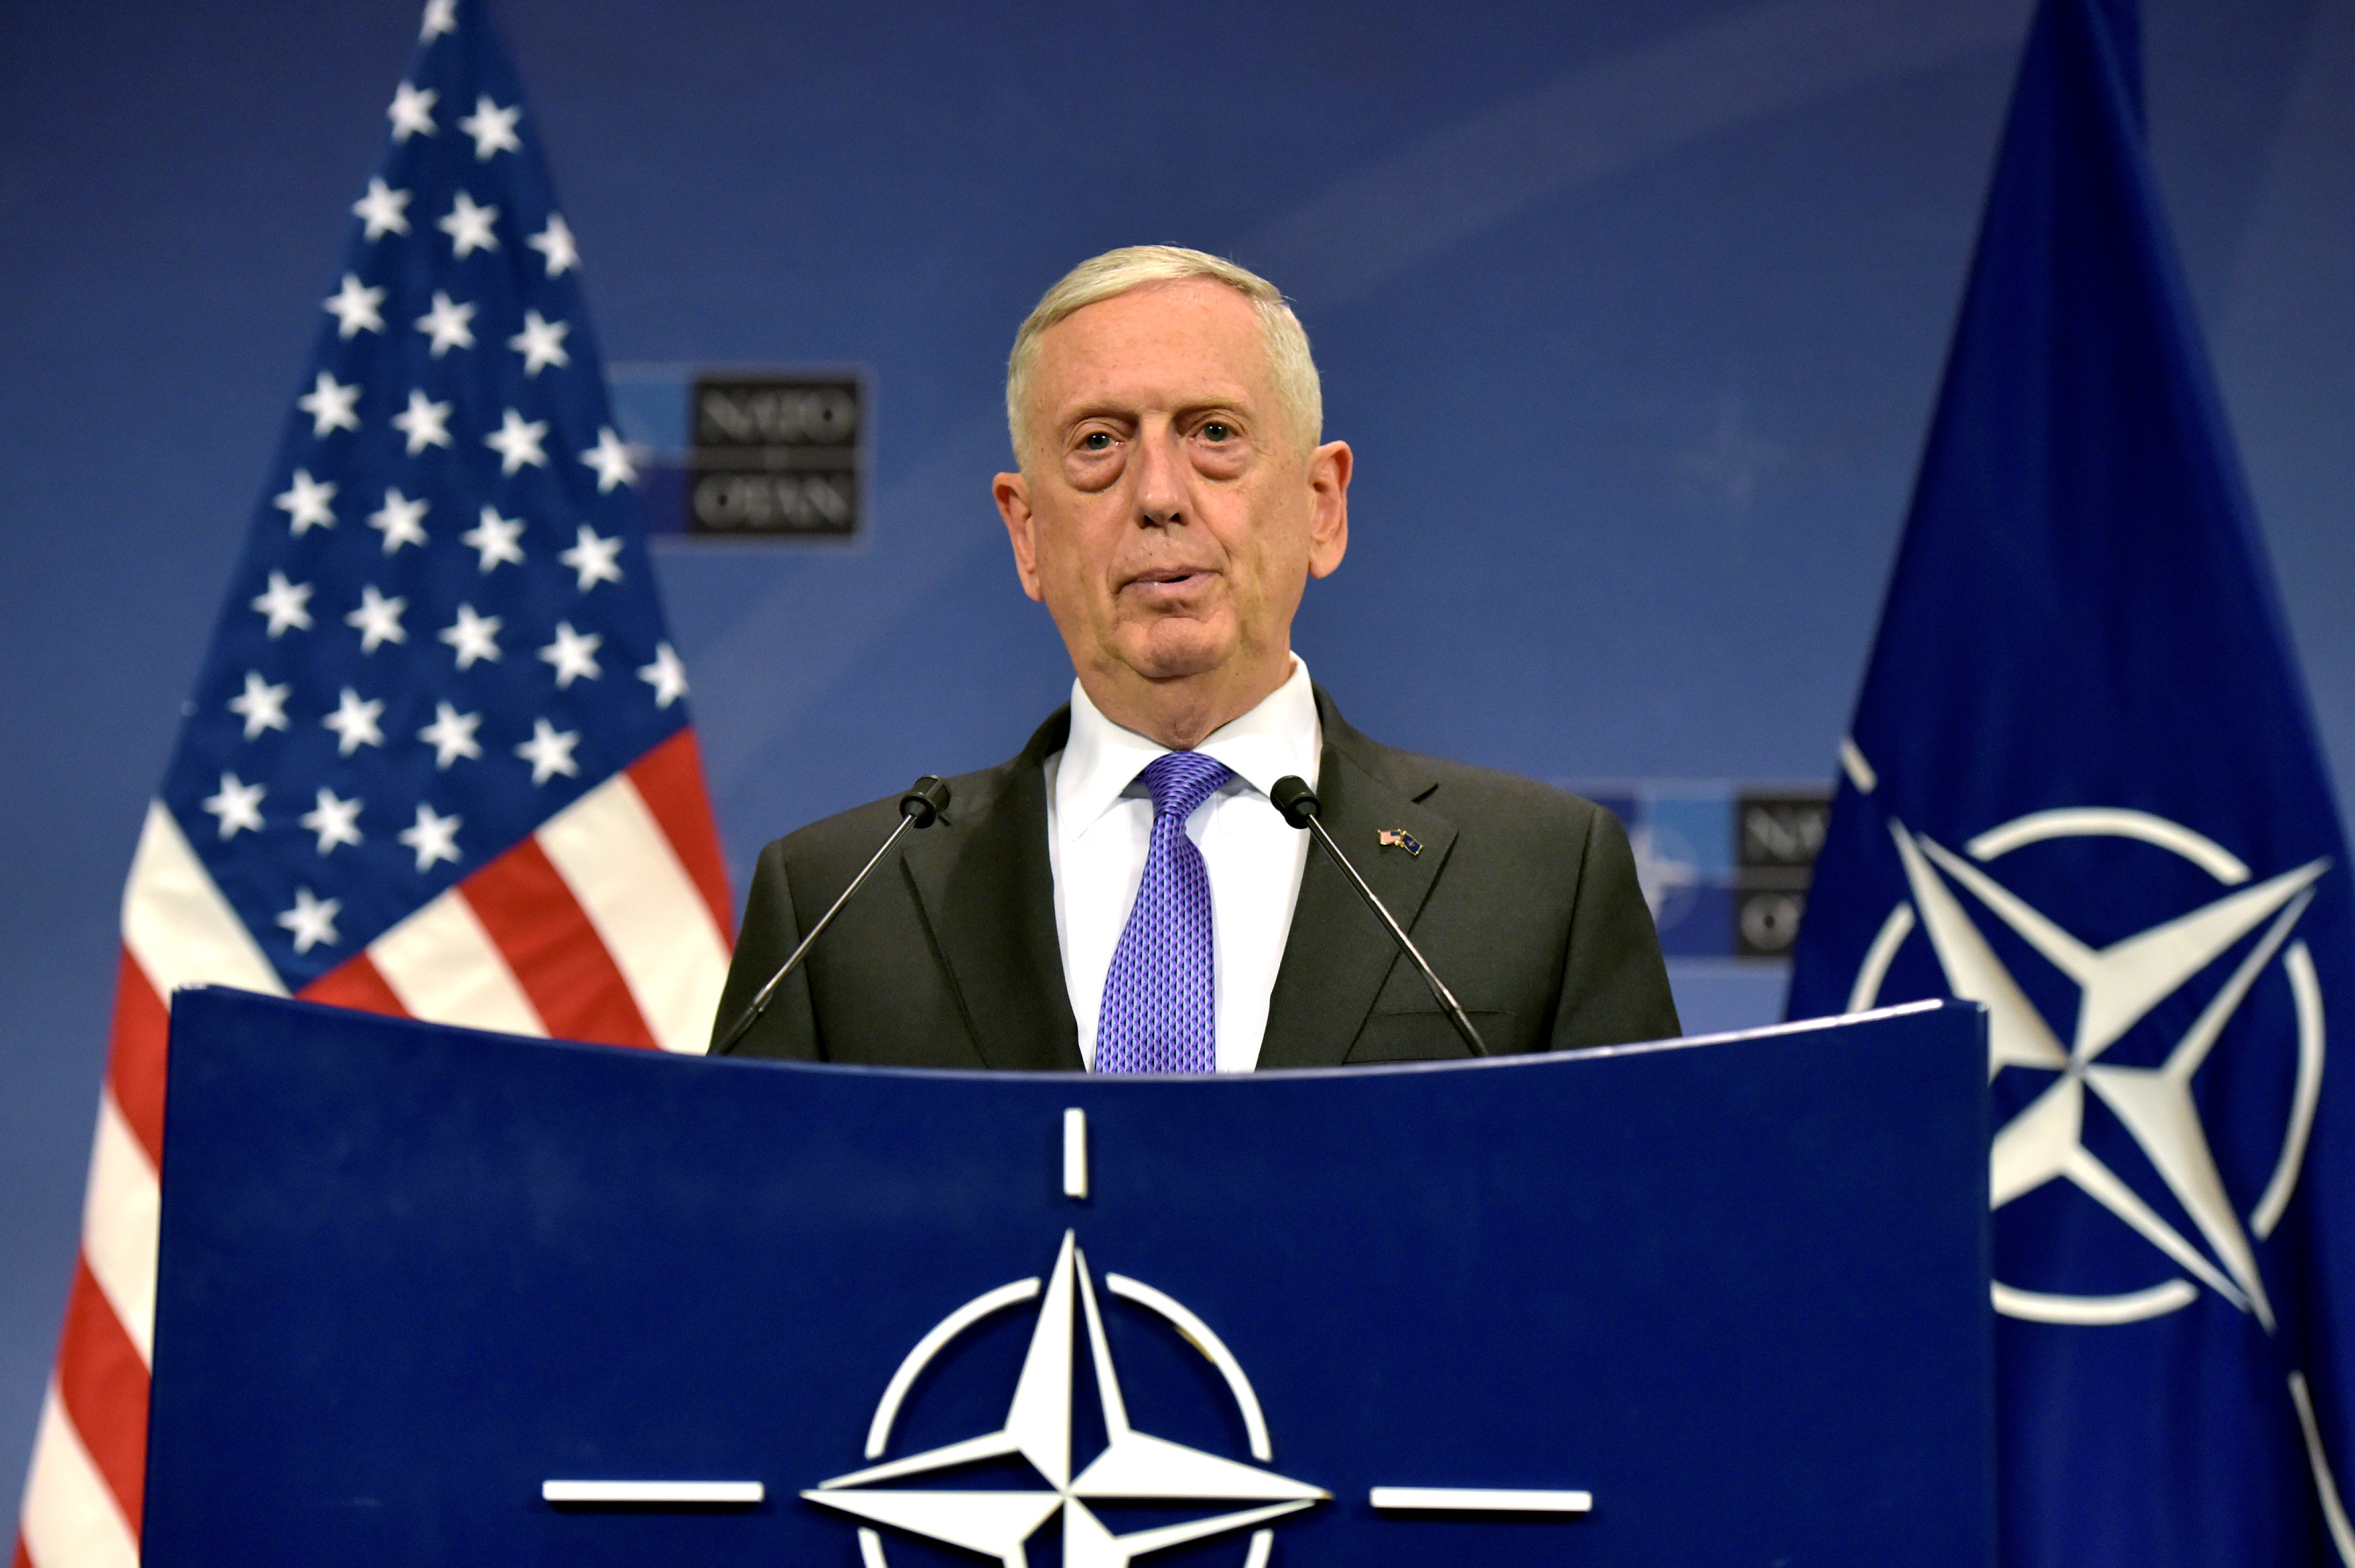 U.S. Secretary of Defence Jim Mattis gives a news conference after a NATO defence ministers meeting at the Alliance headquarters in Brussels, Belgium on June 29, 2017. (REUTERS/Eric Vidal)